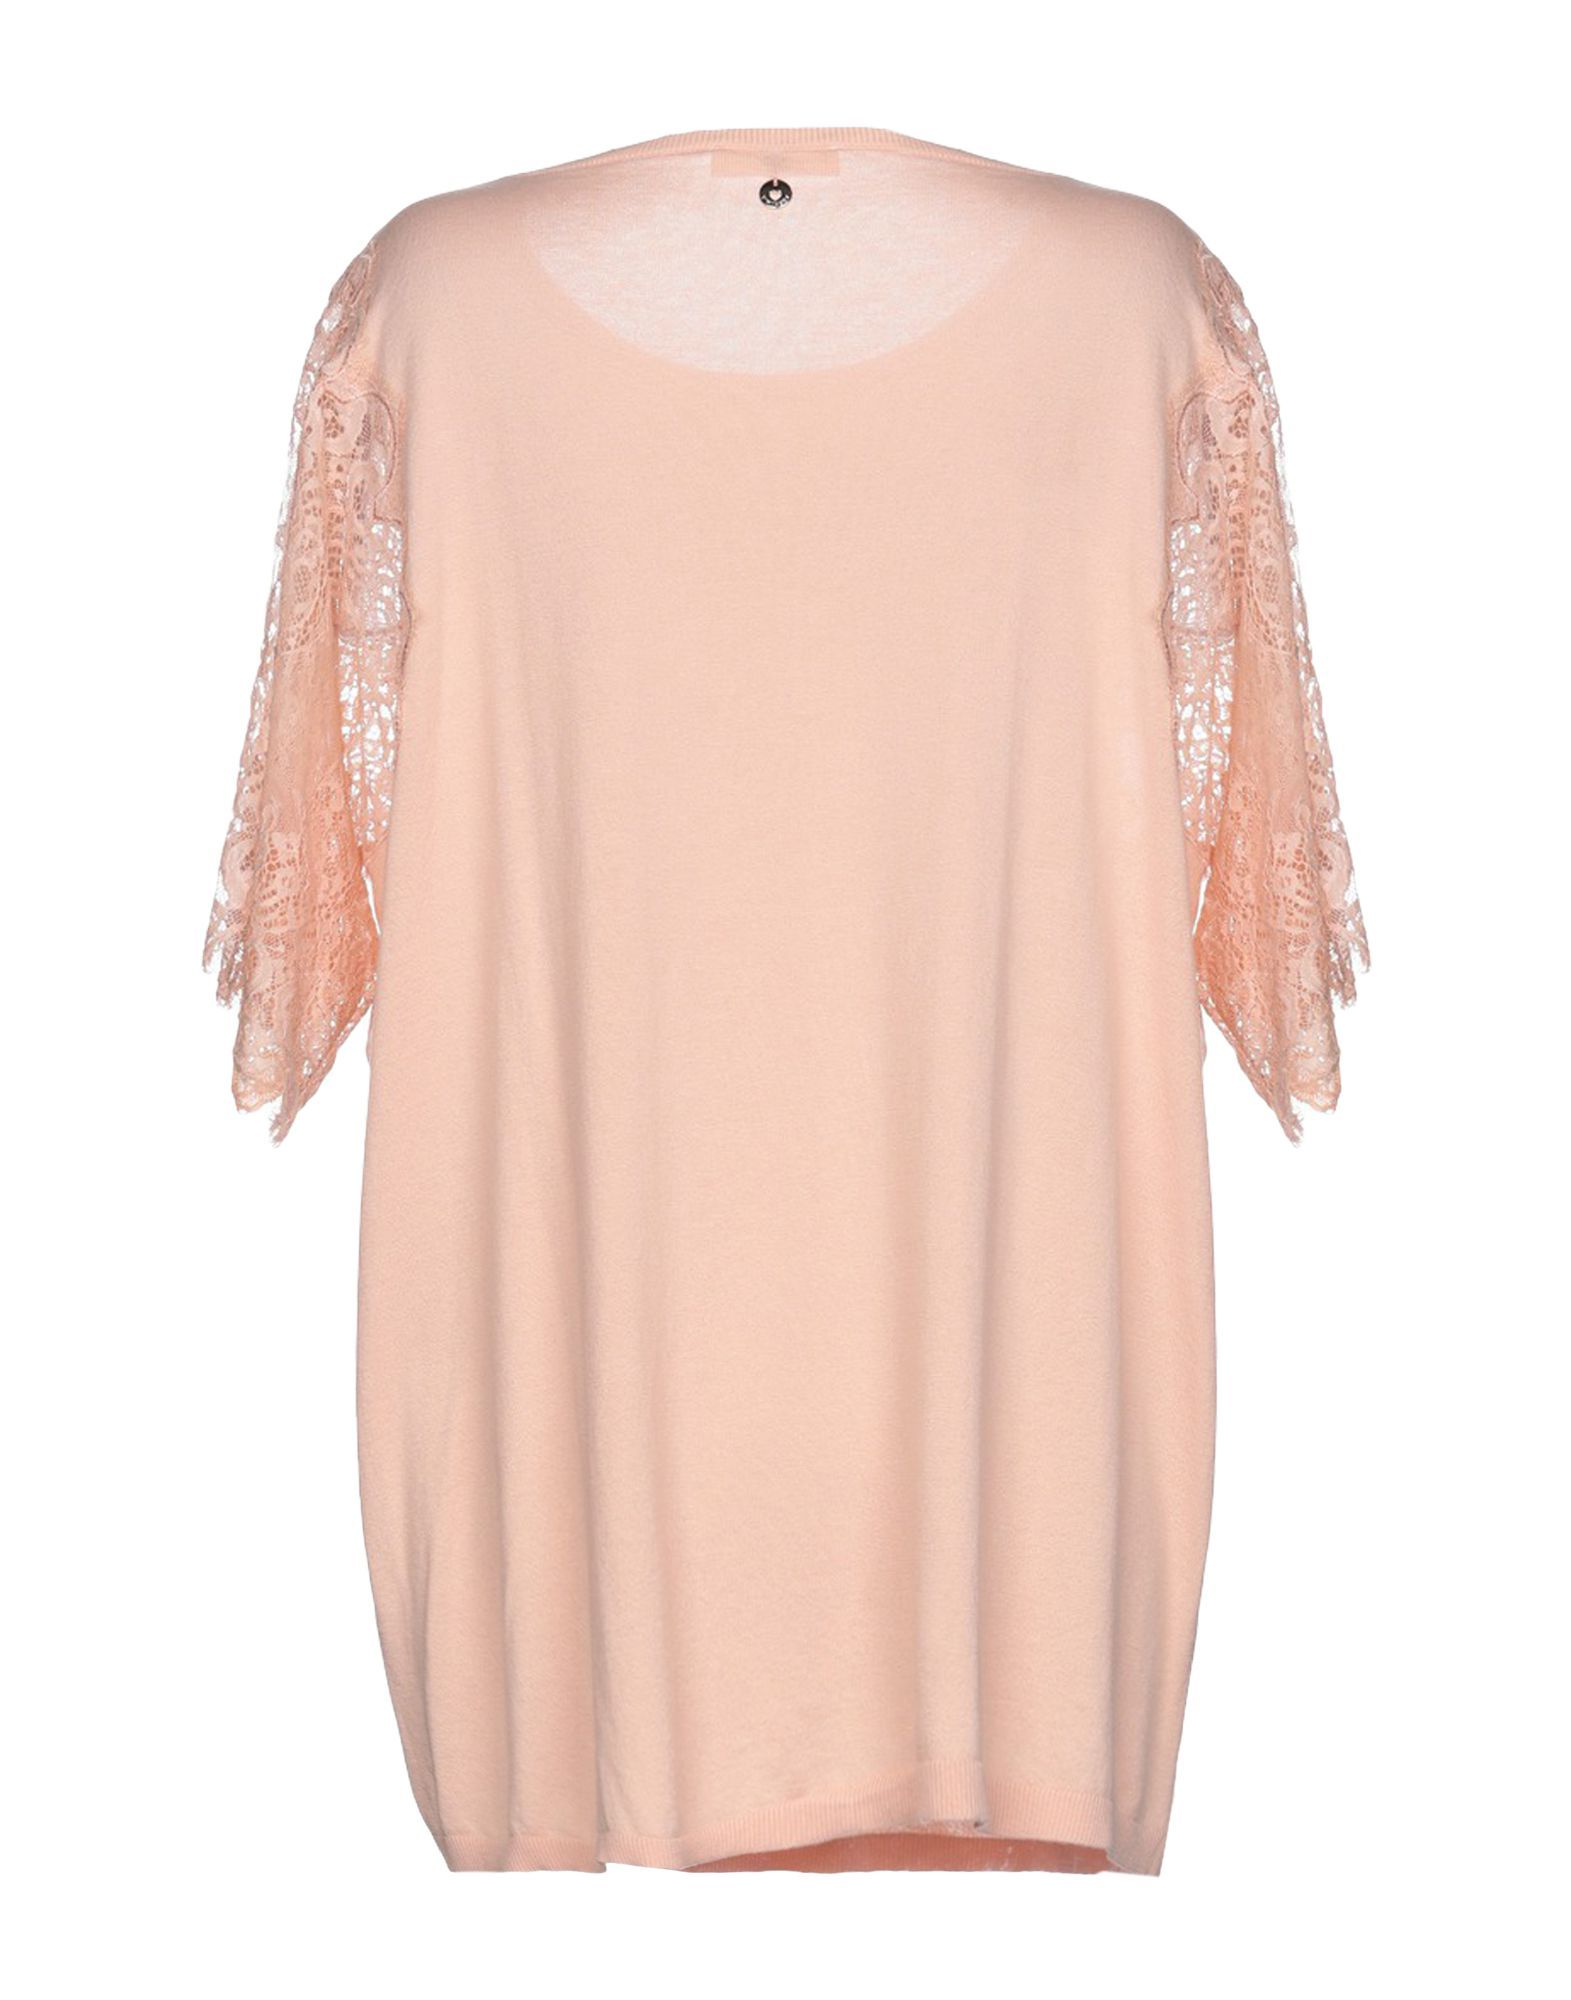 Twinset Pale Pink Cotton Lace Knit